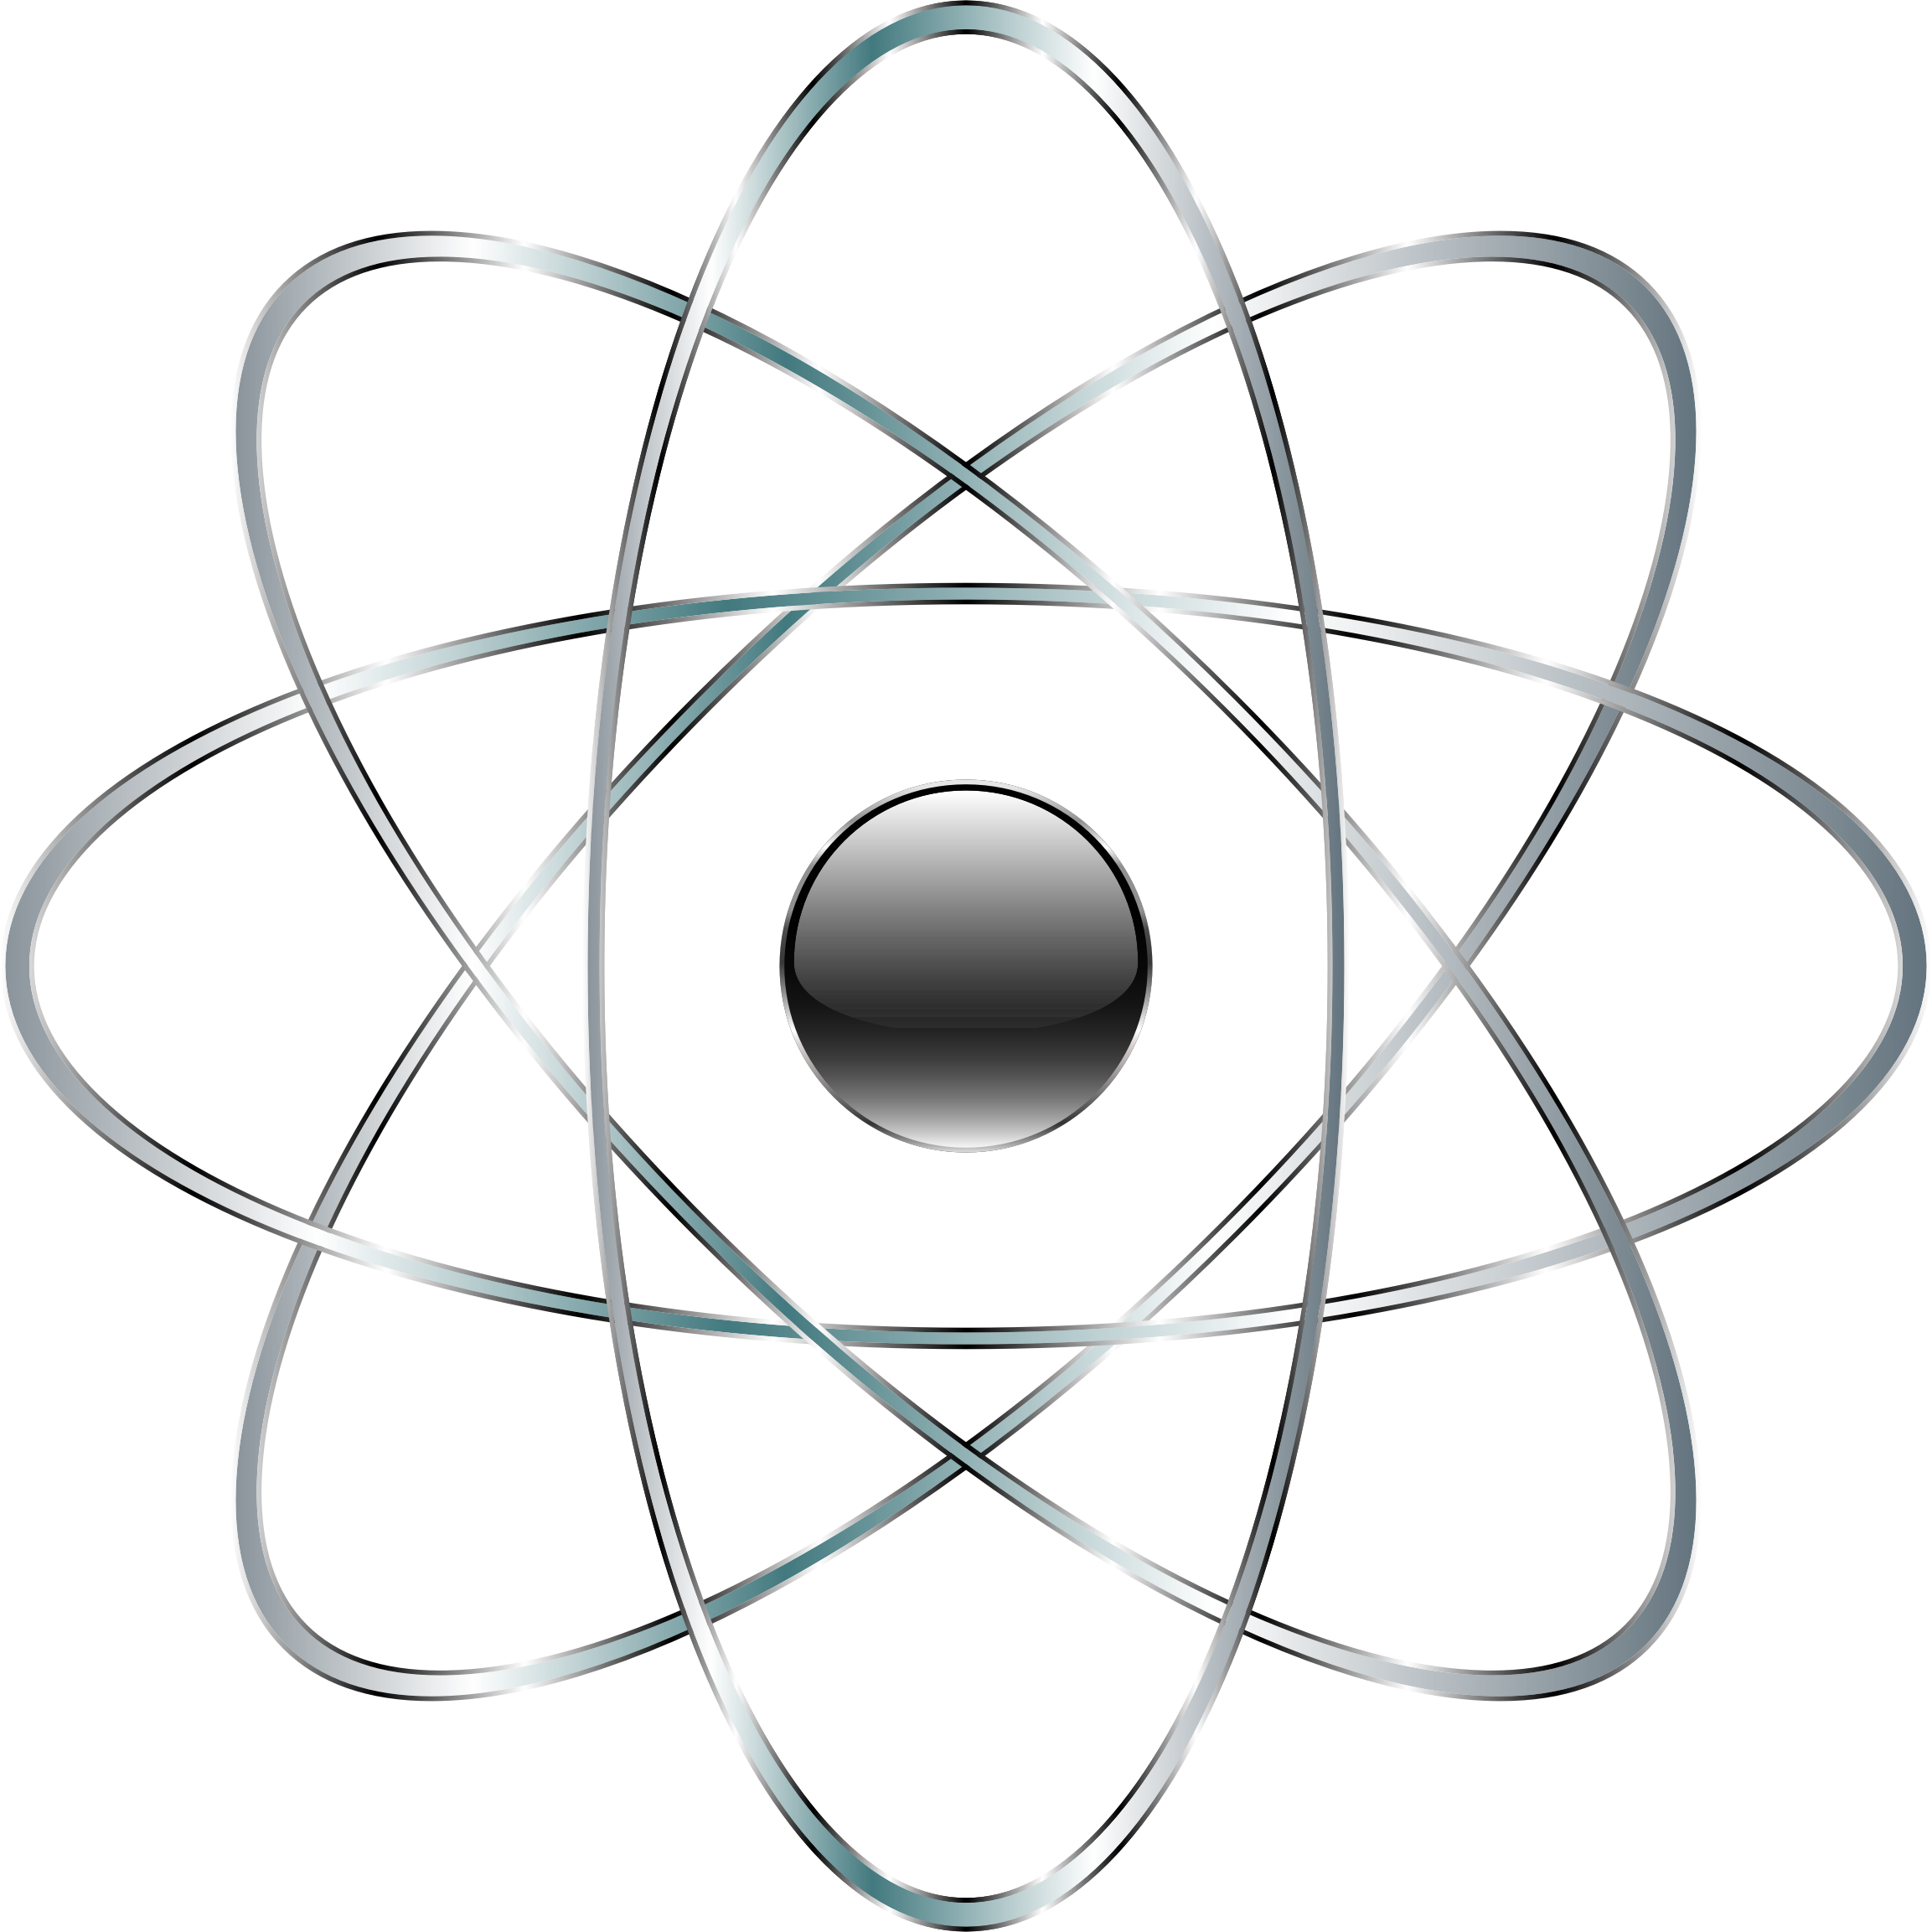 Atom clipart transparent background. No icons png free